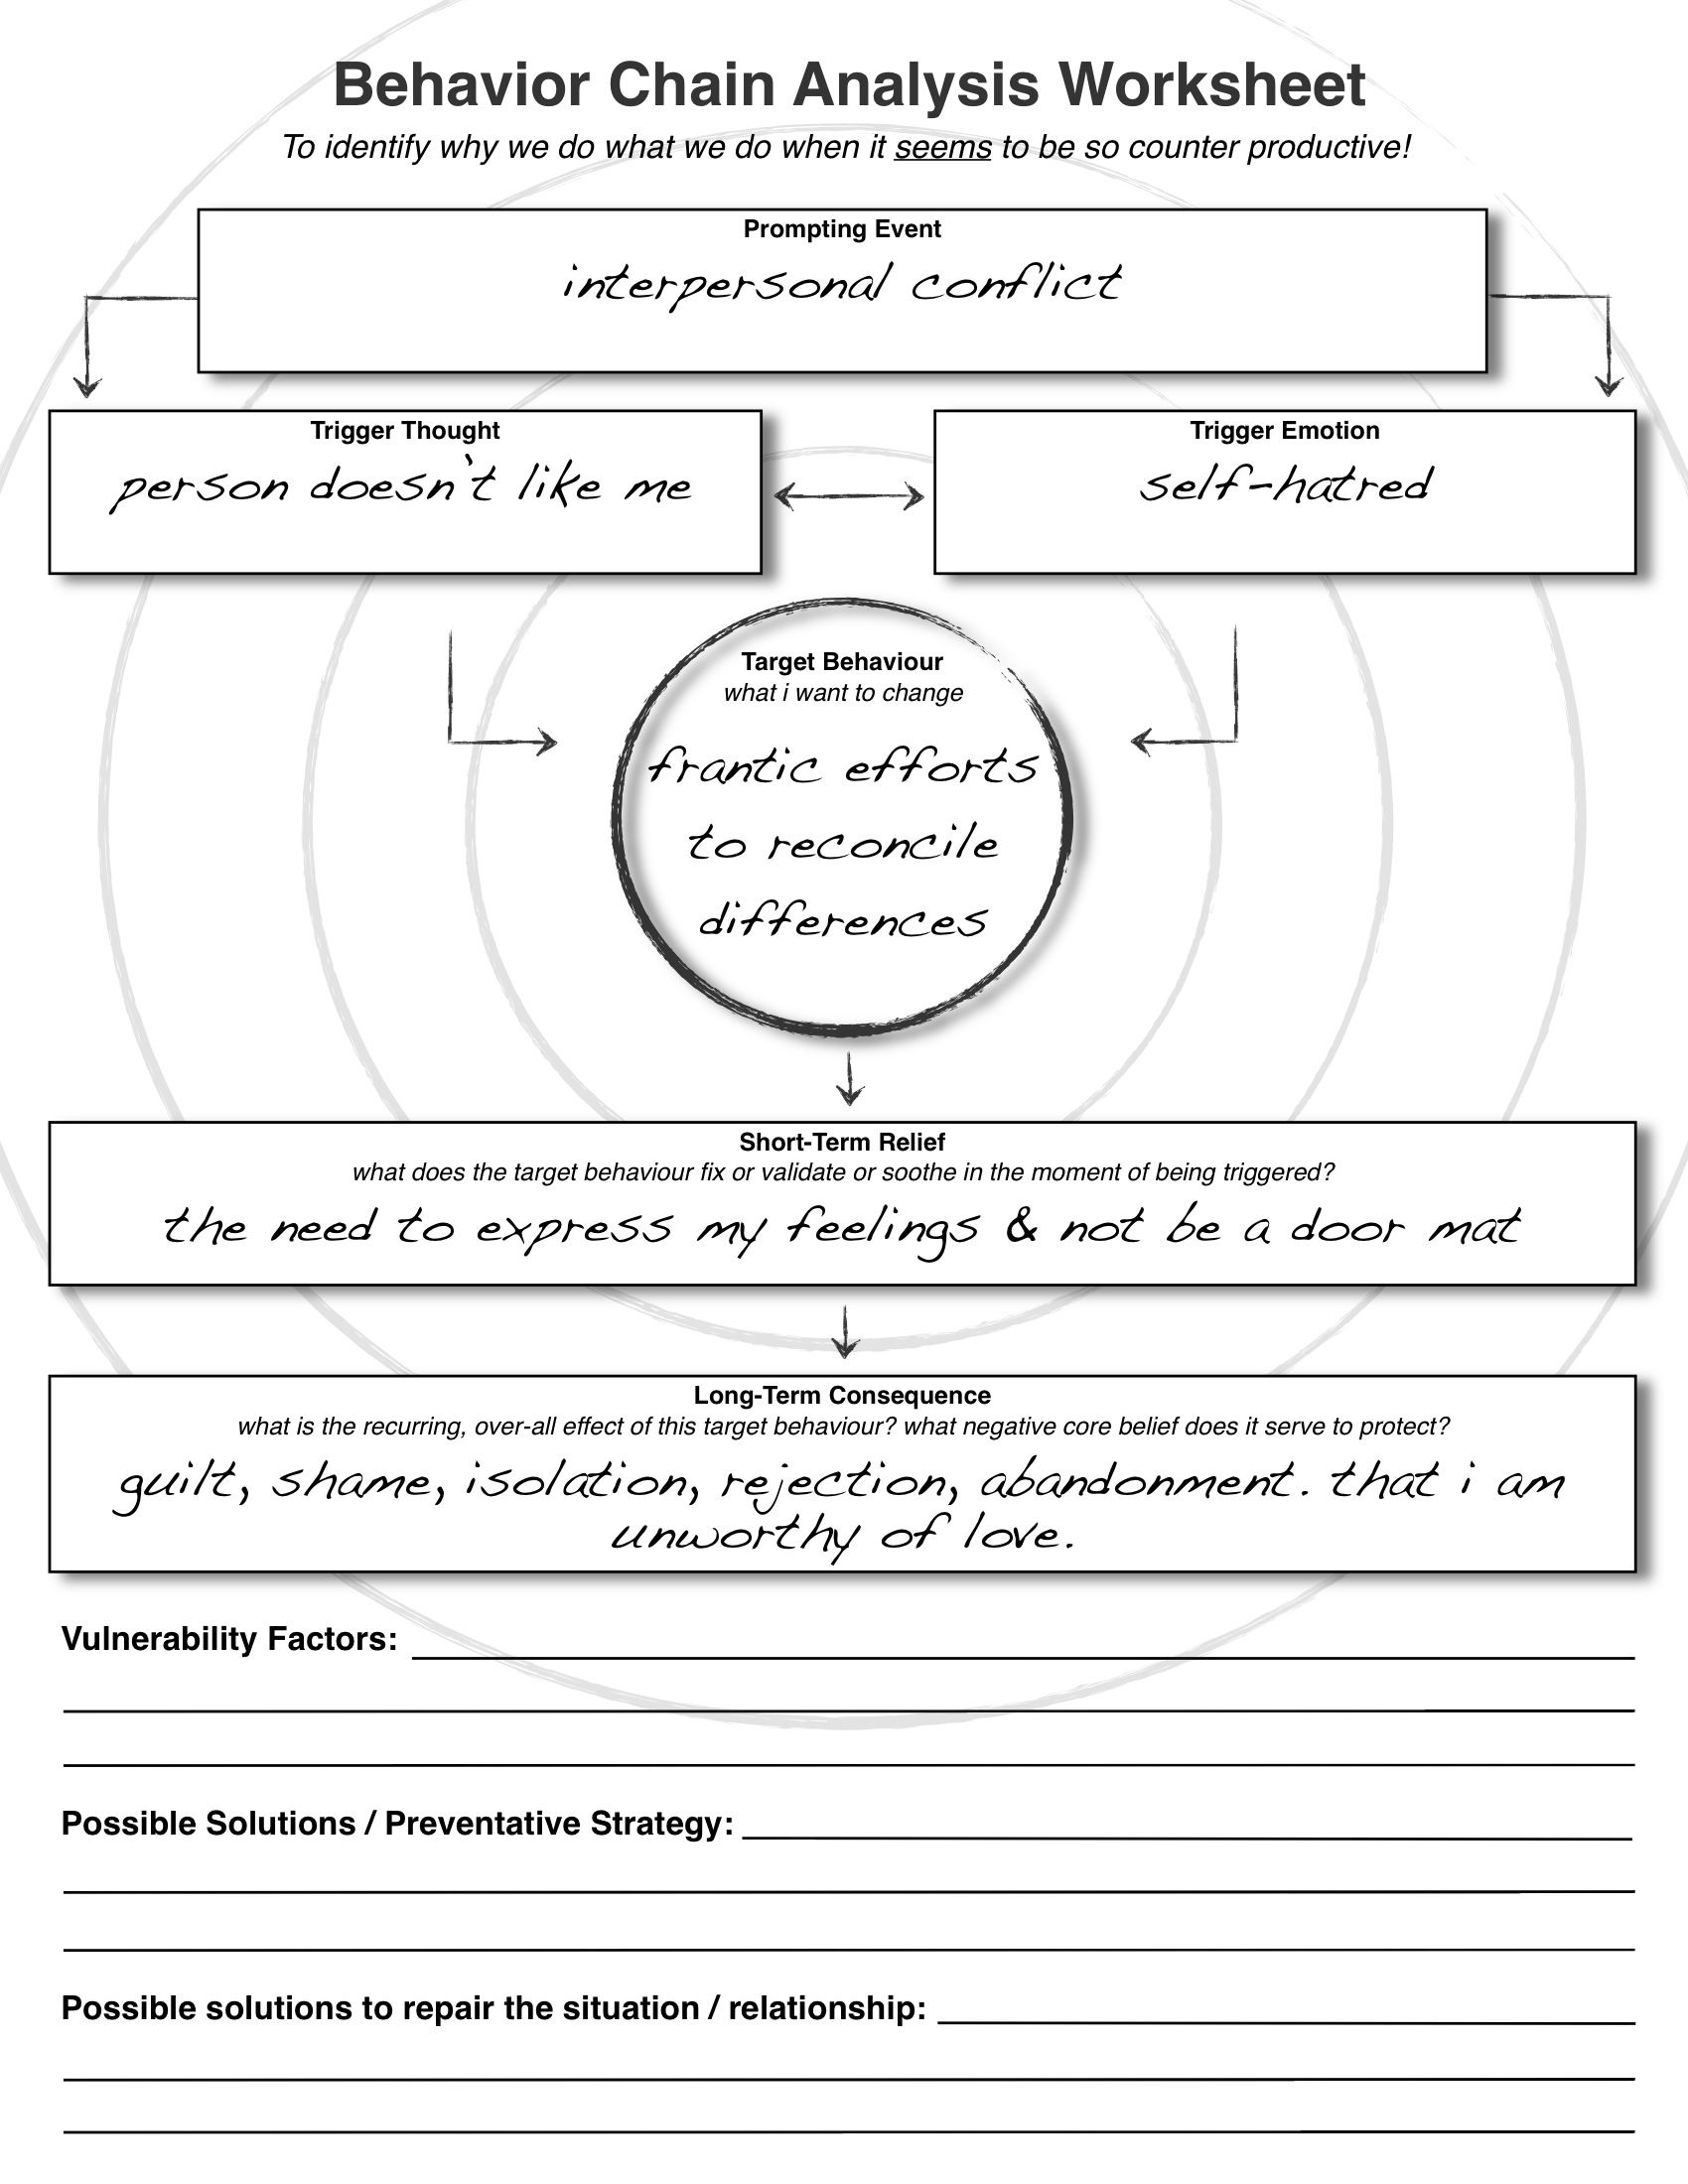 dbt: behaviour chain analysis worksheet | Worksheets